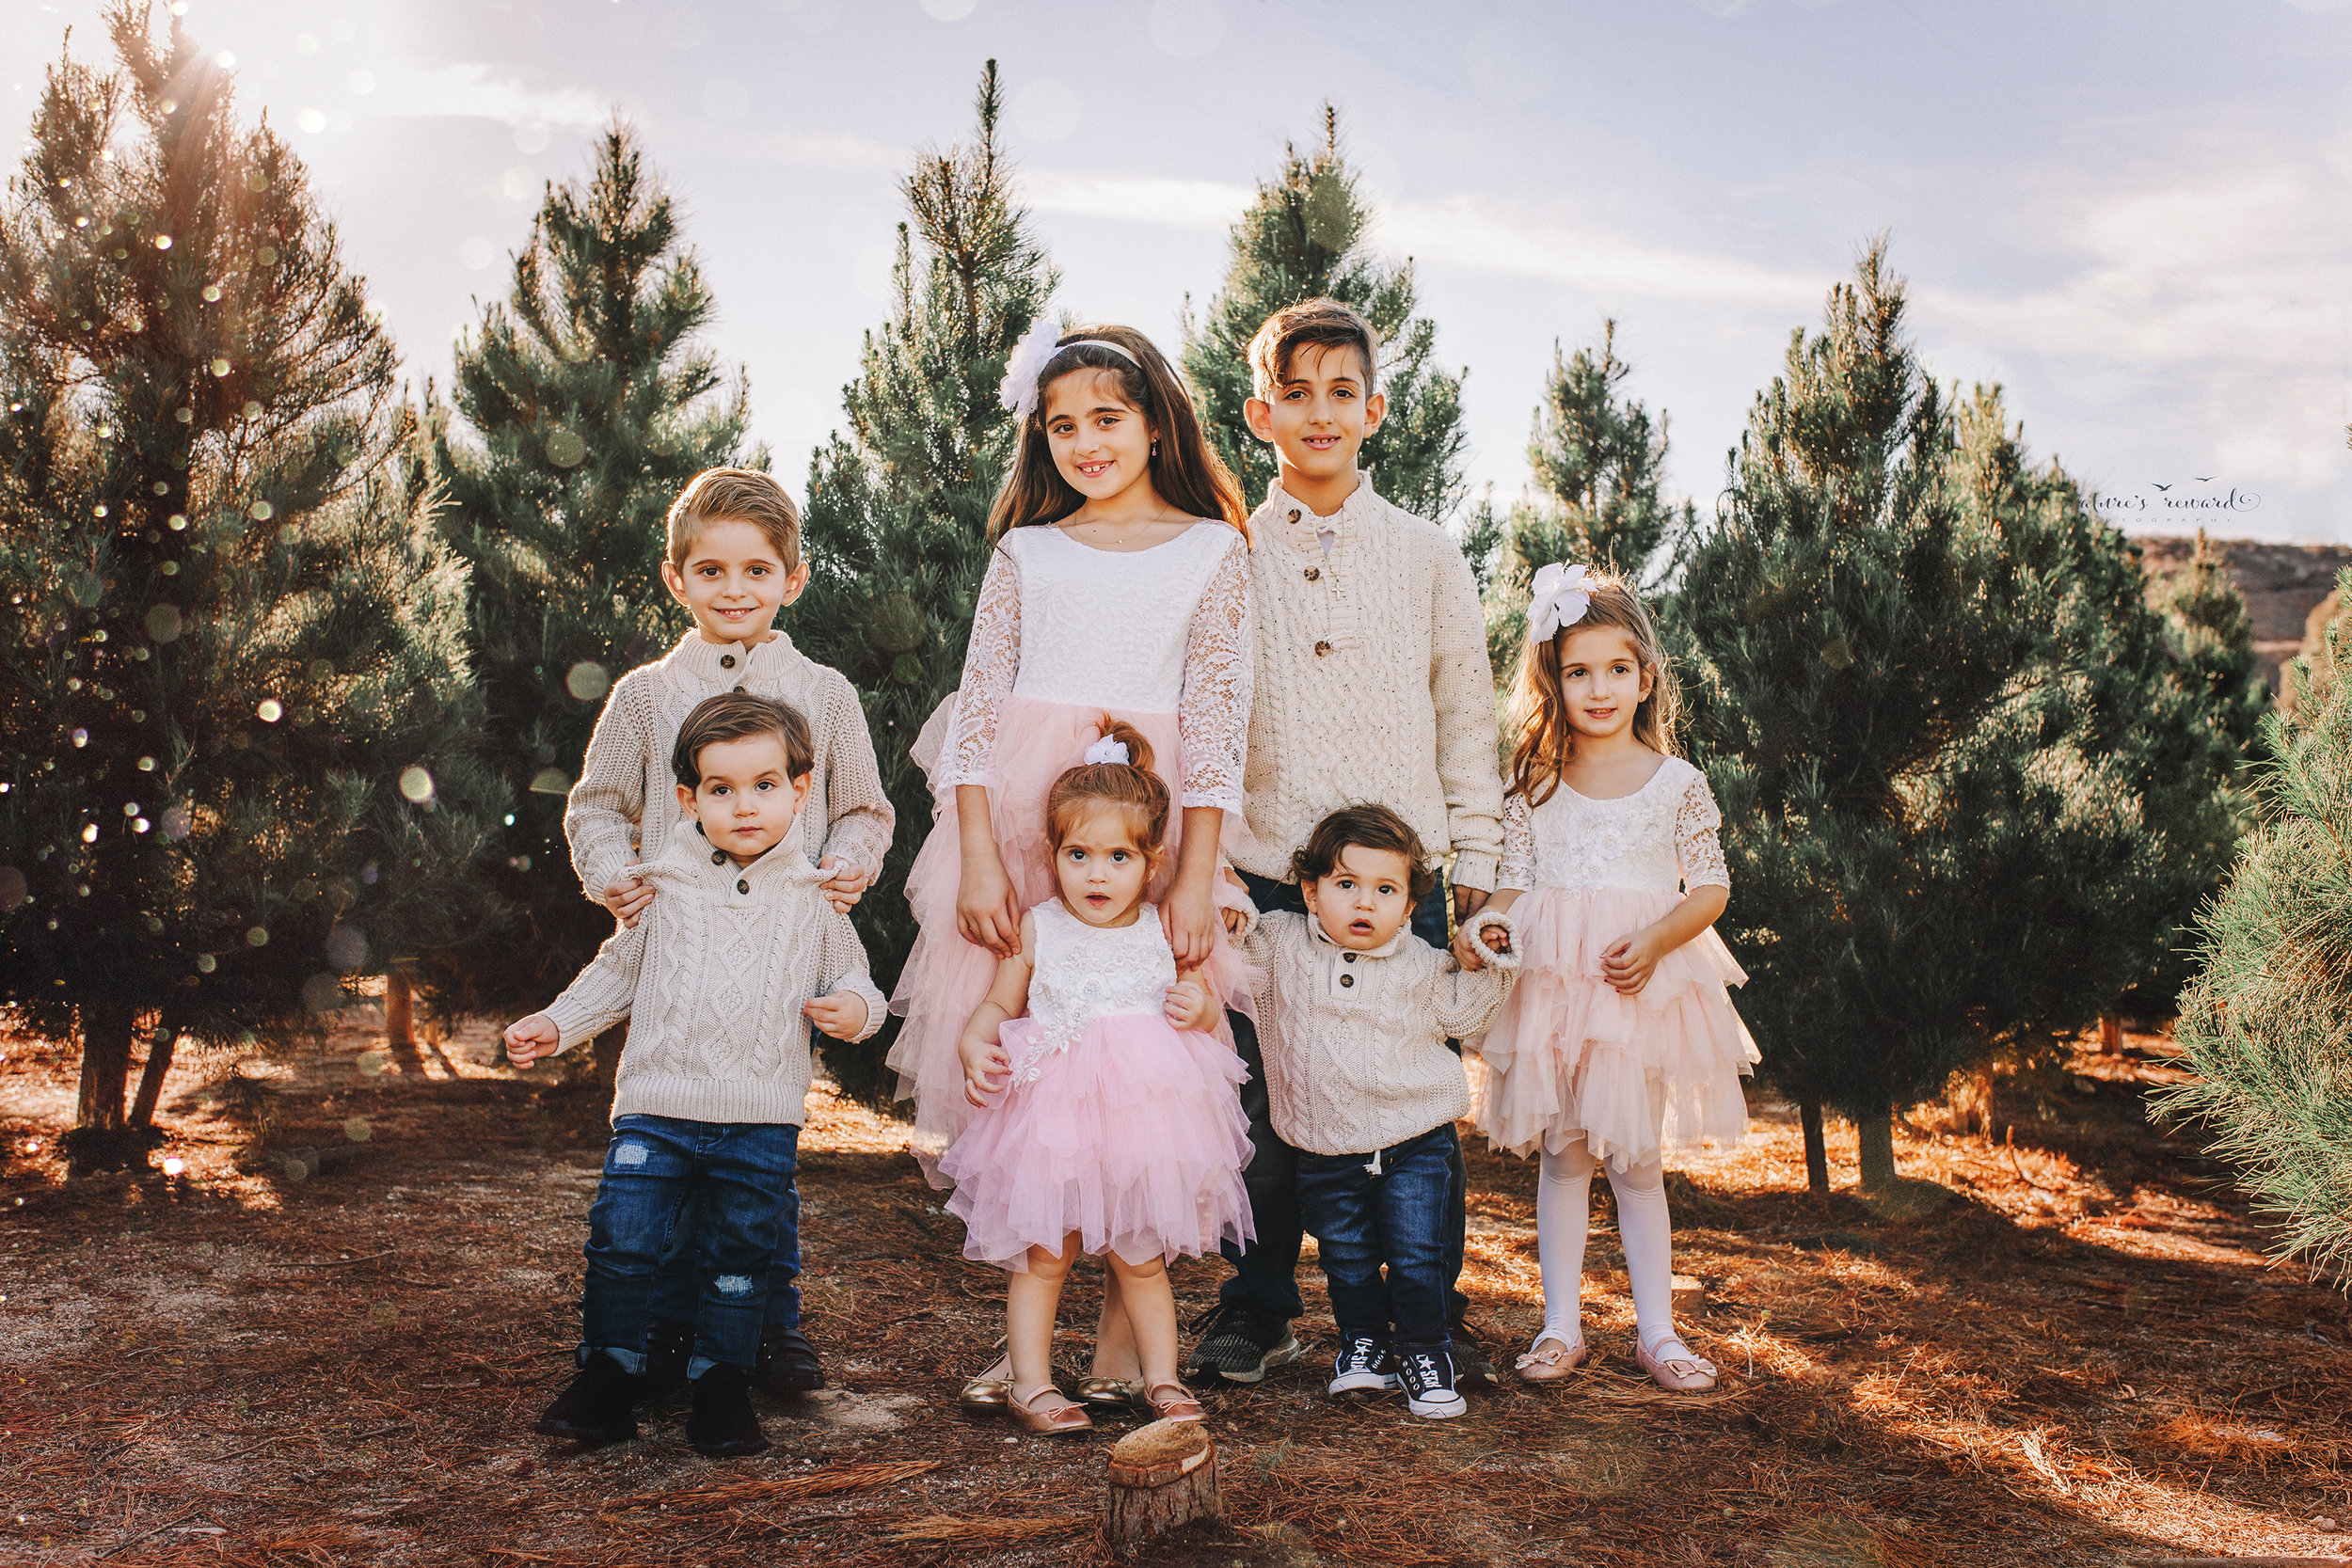 This gorgeous bunch!  Cousins!  A Christmas tree farm portrait by Nature's Reward Photography